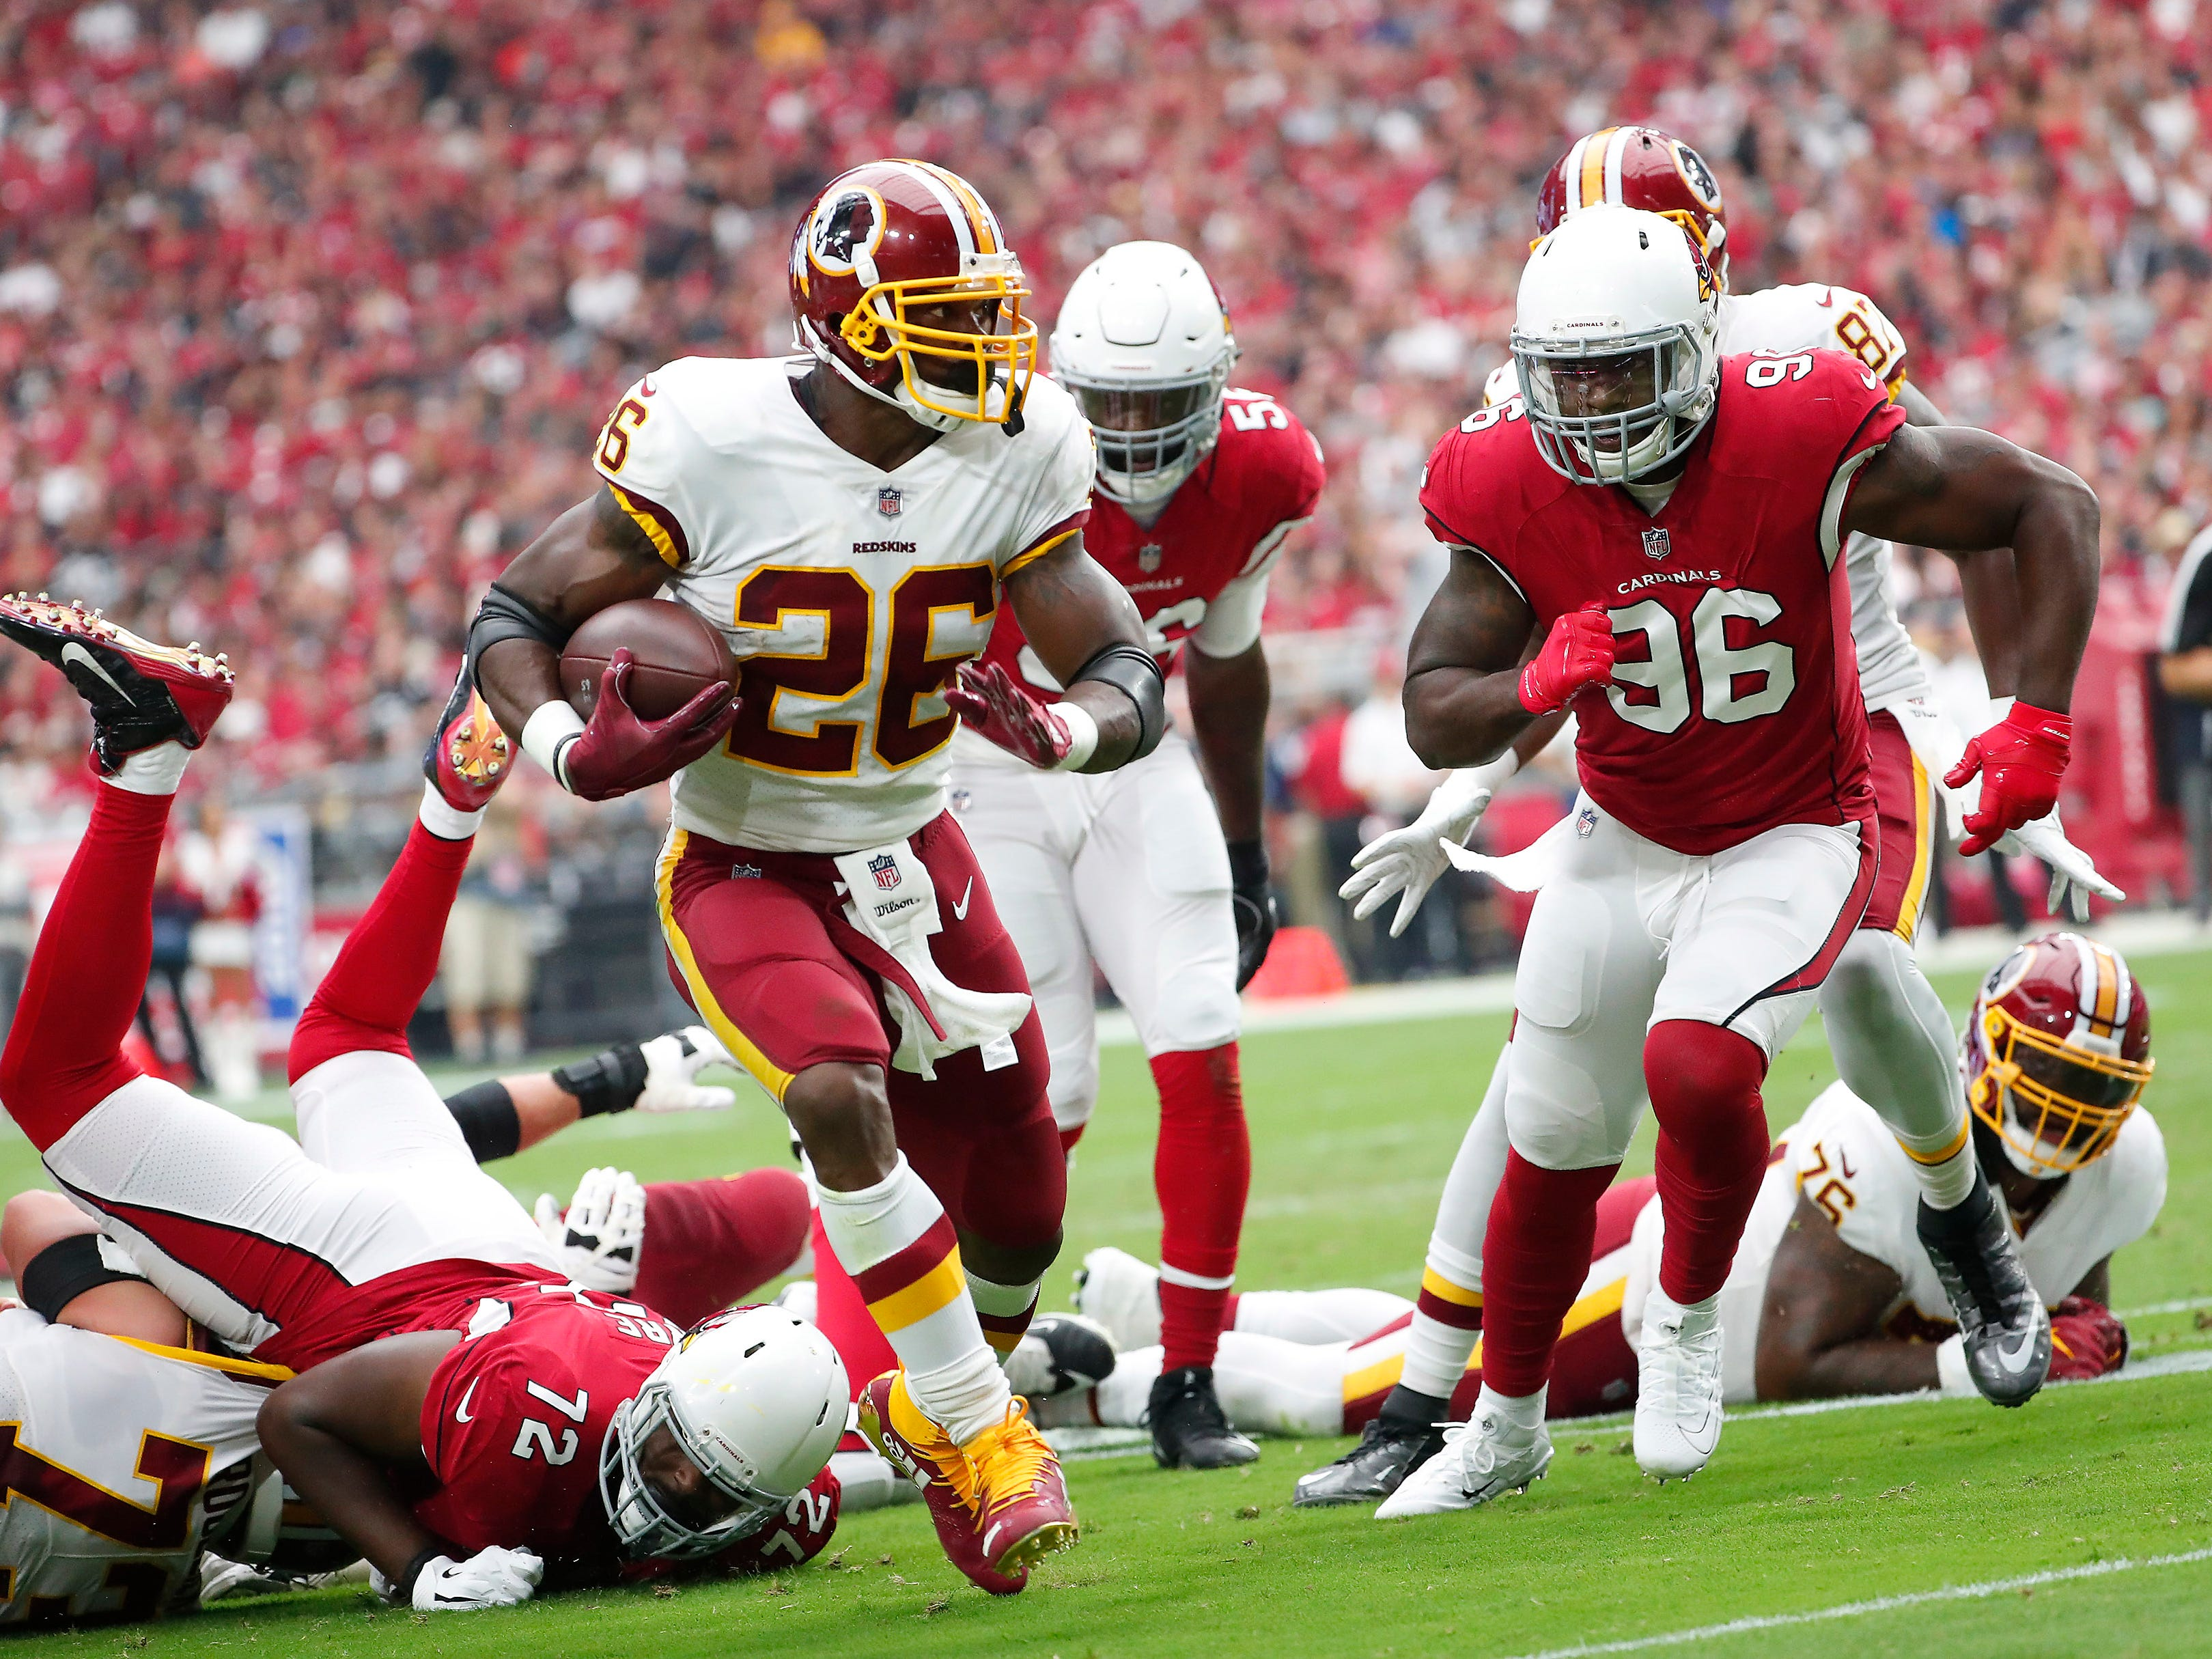 Washington Redskins running back Adrian Peterson (26) breaks away from Arizona Cardinals defensive end Jacquies Smith (96) during the first quarter at State Farm Stadium in Glendale, Ariz. September 9. 2018.